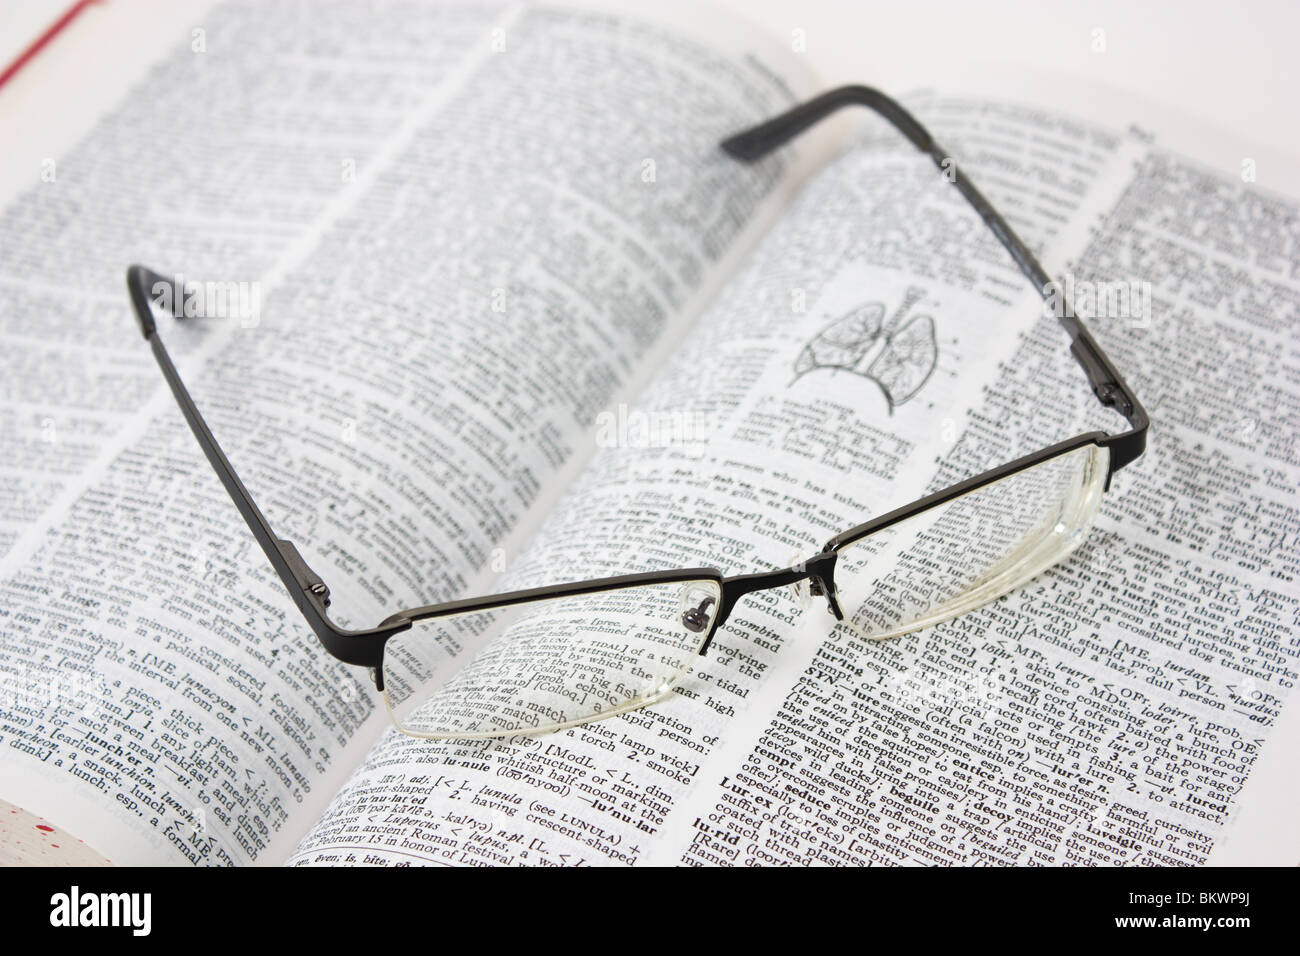 black framed eyeglasses on book - Stock Image